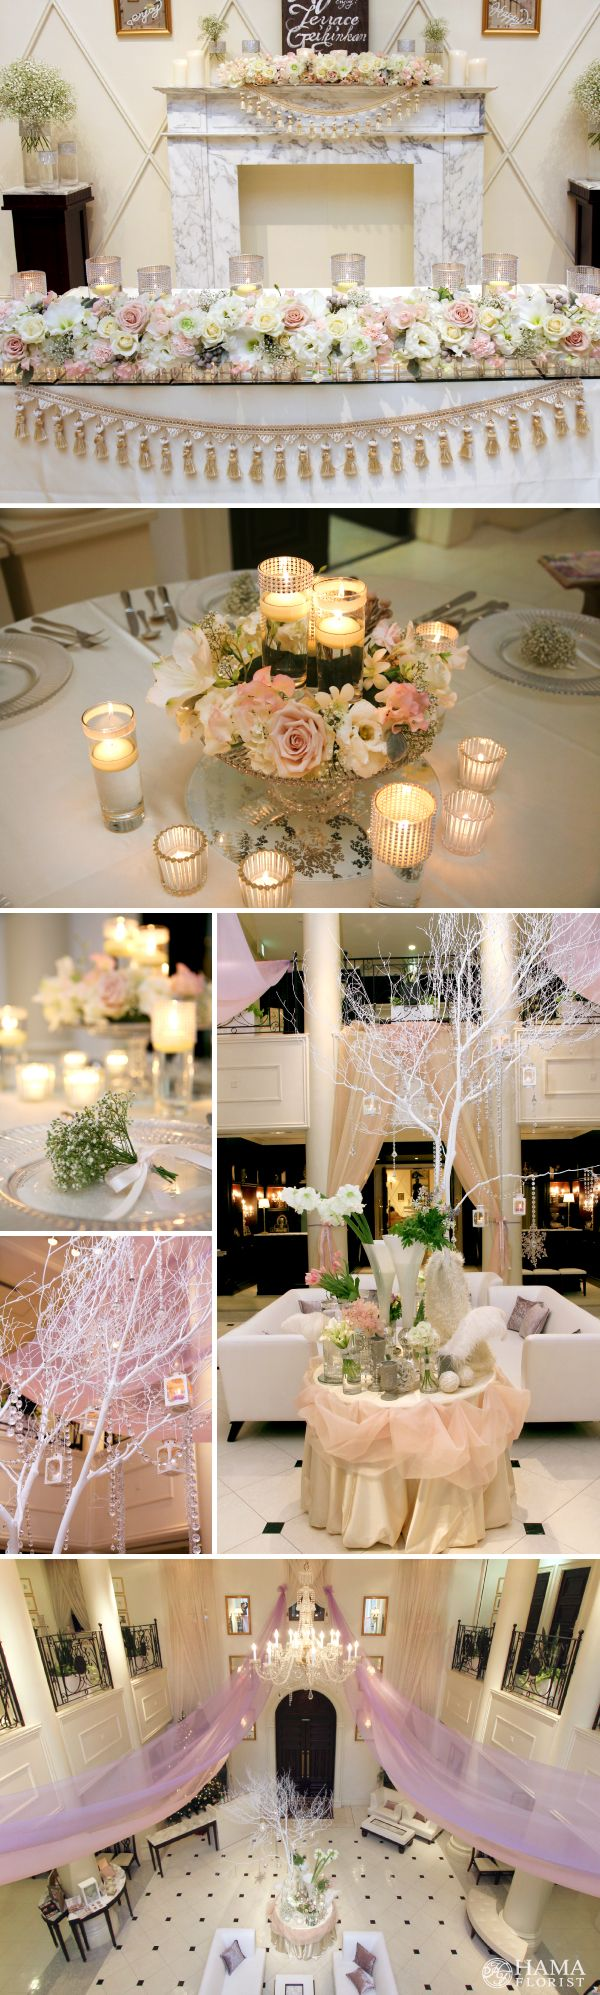 soft pink×white flower wedding with tulle